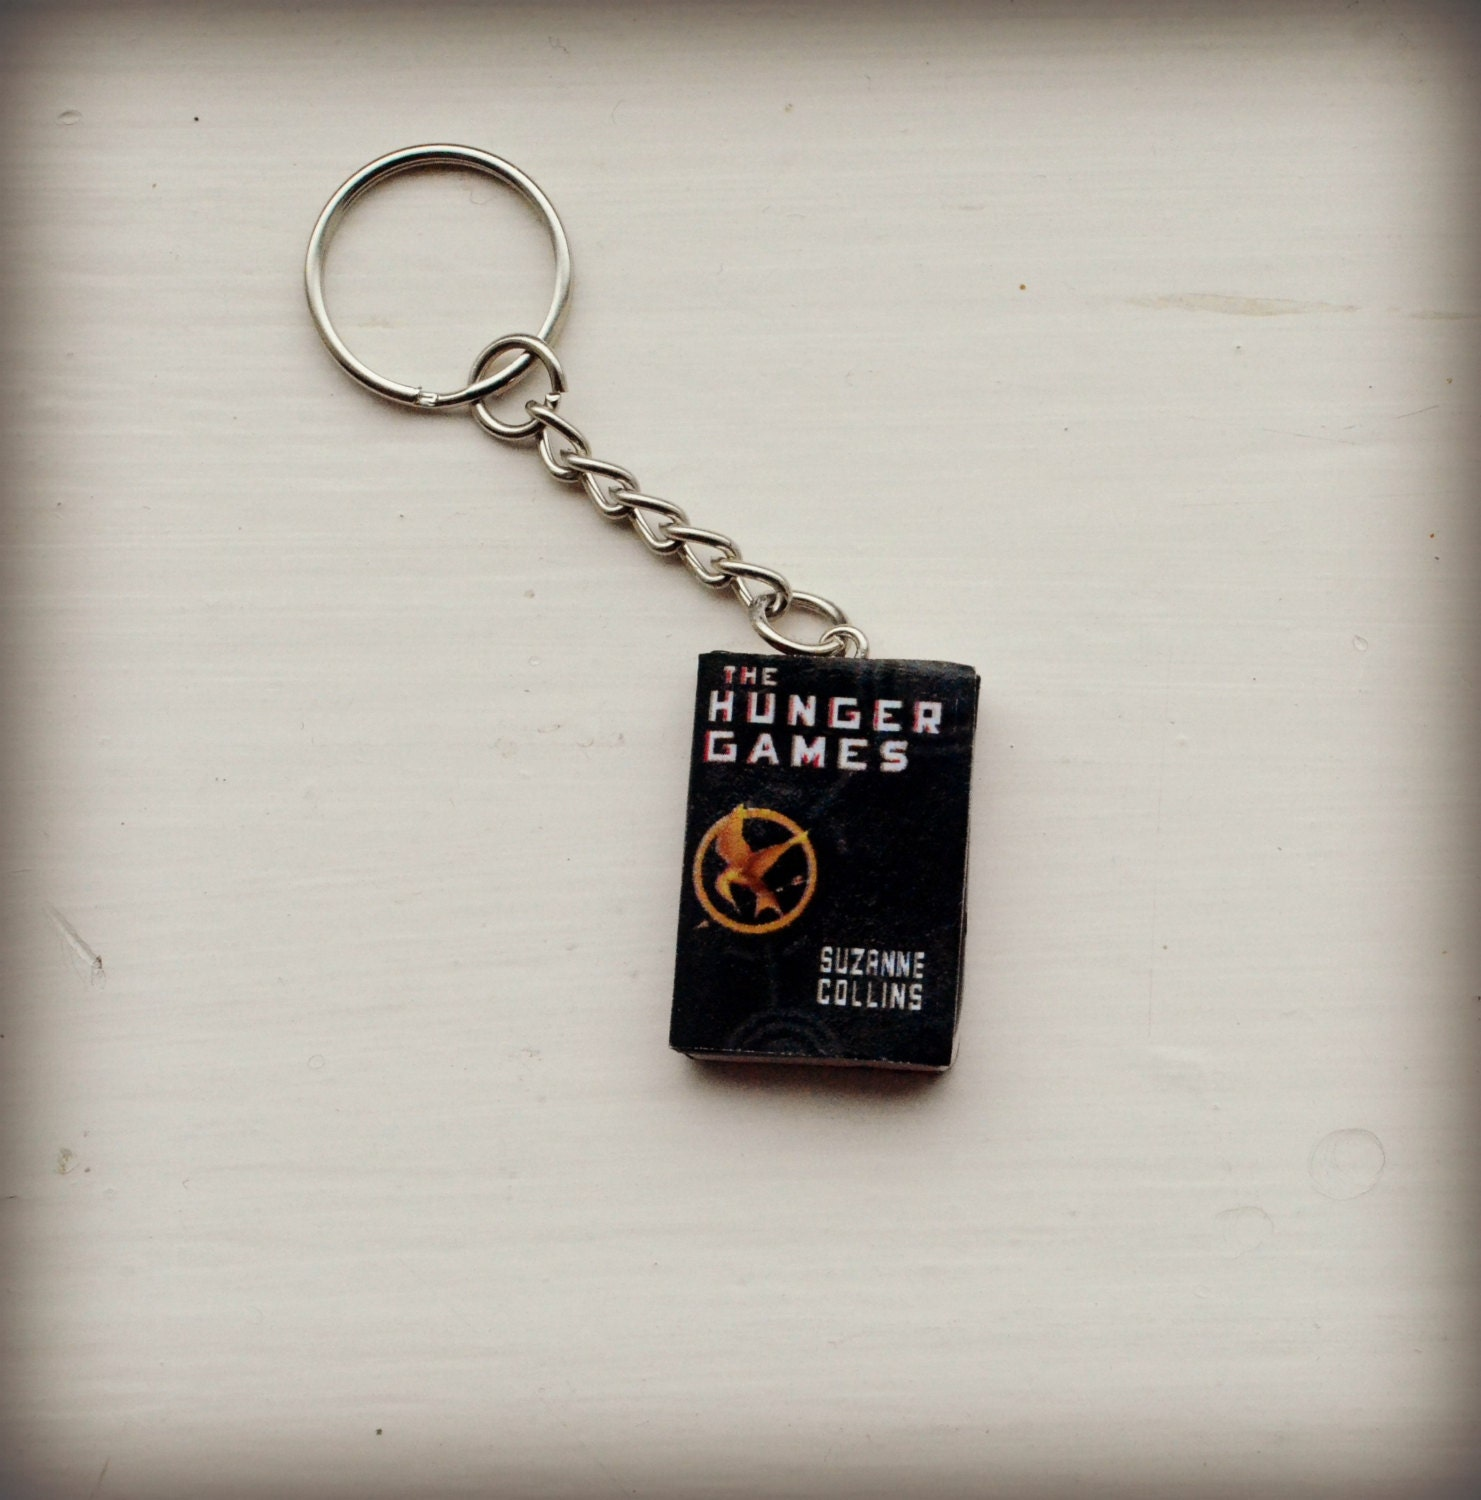 The Hunger Games Mini Book Keyring Key Chain